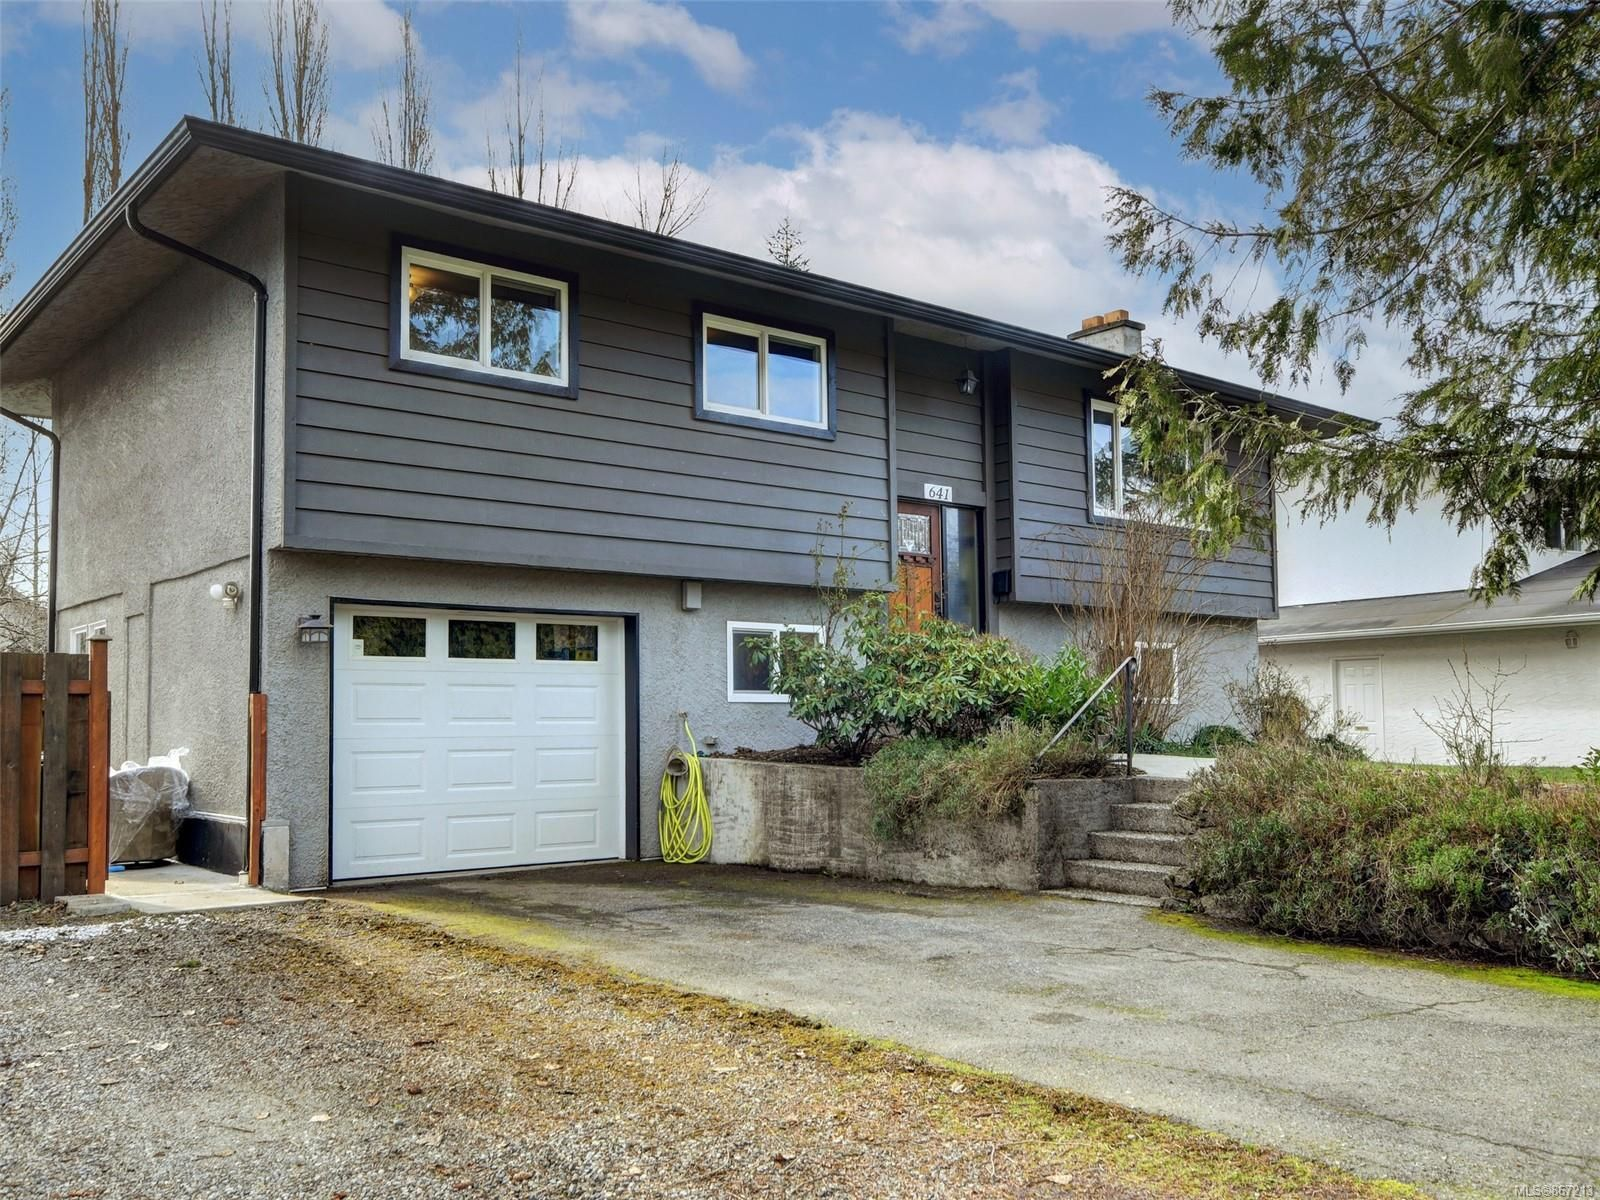 Main Photo: 641 Baltic Pl in : SW Glanford House for sale (Saanich West)  : MLS®# 867213